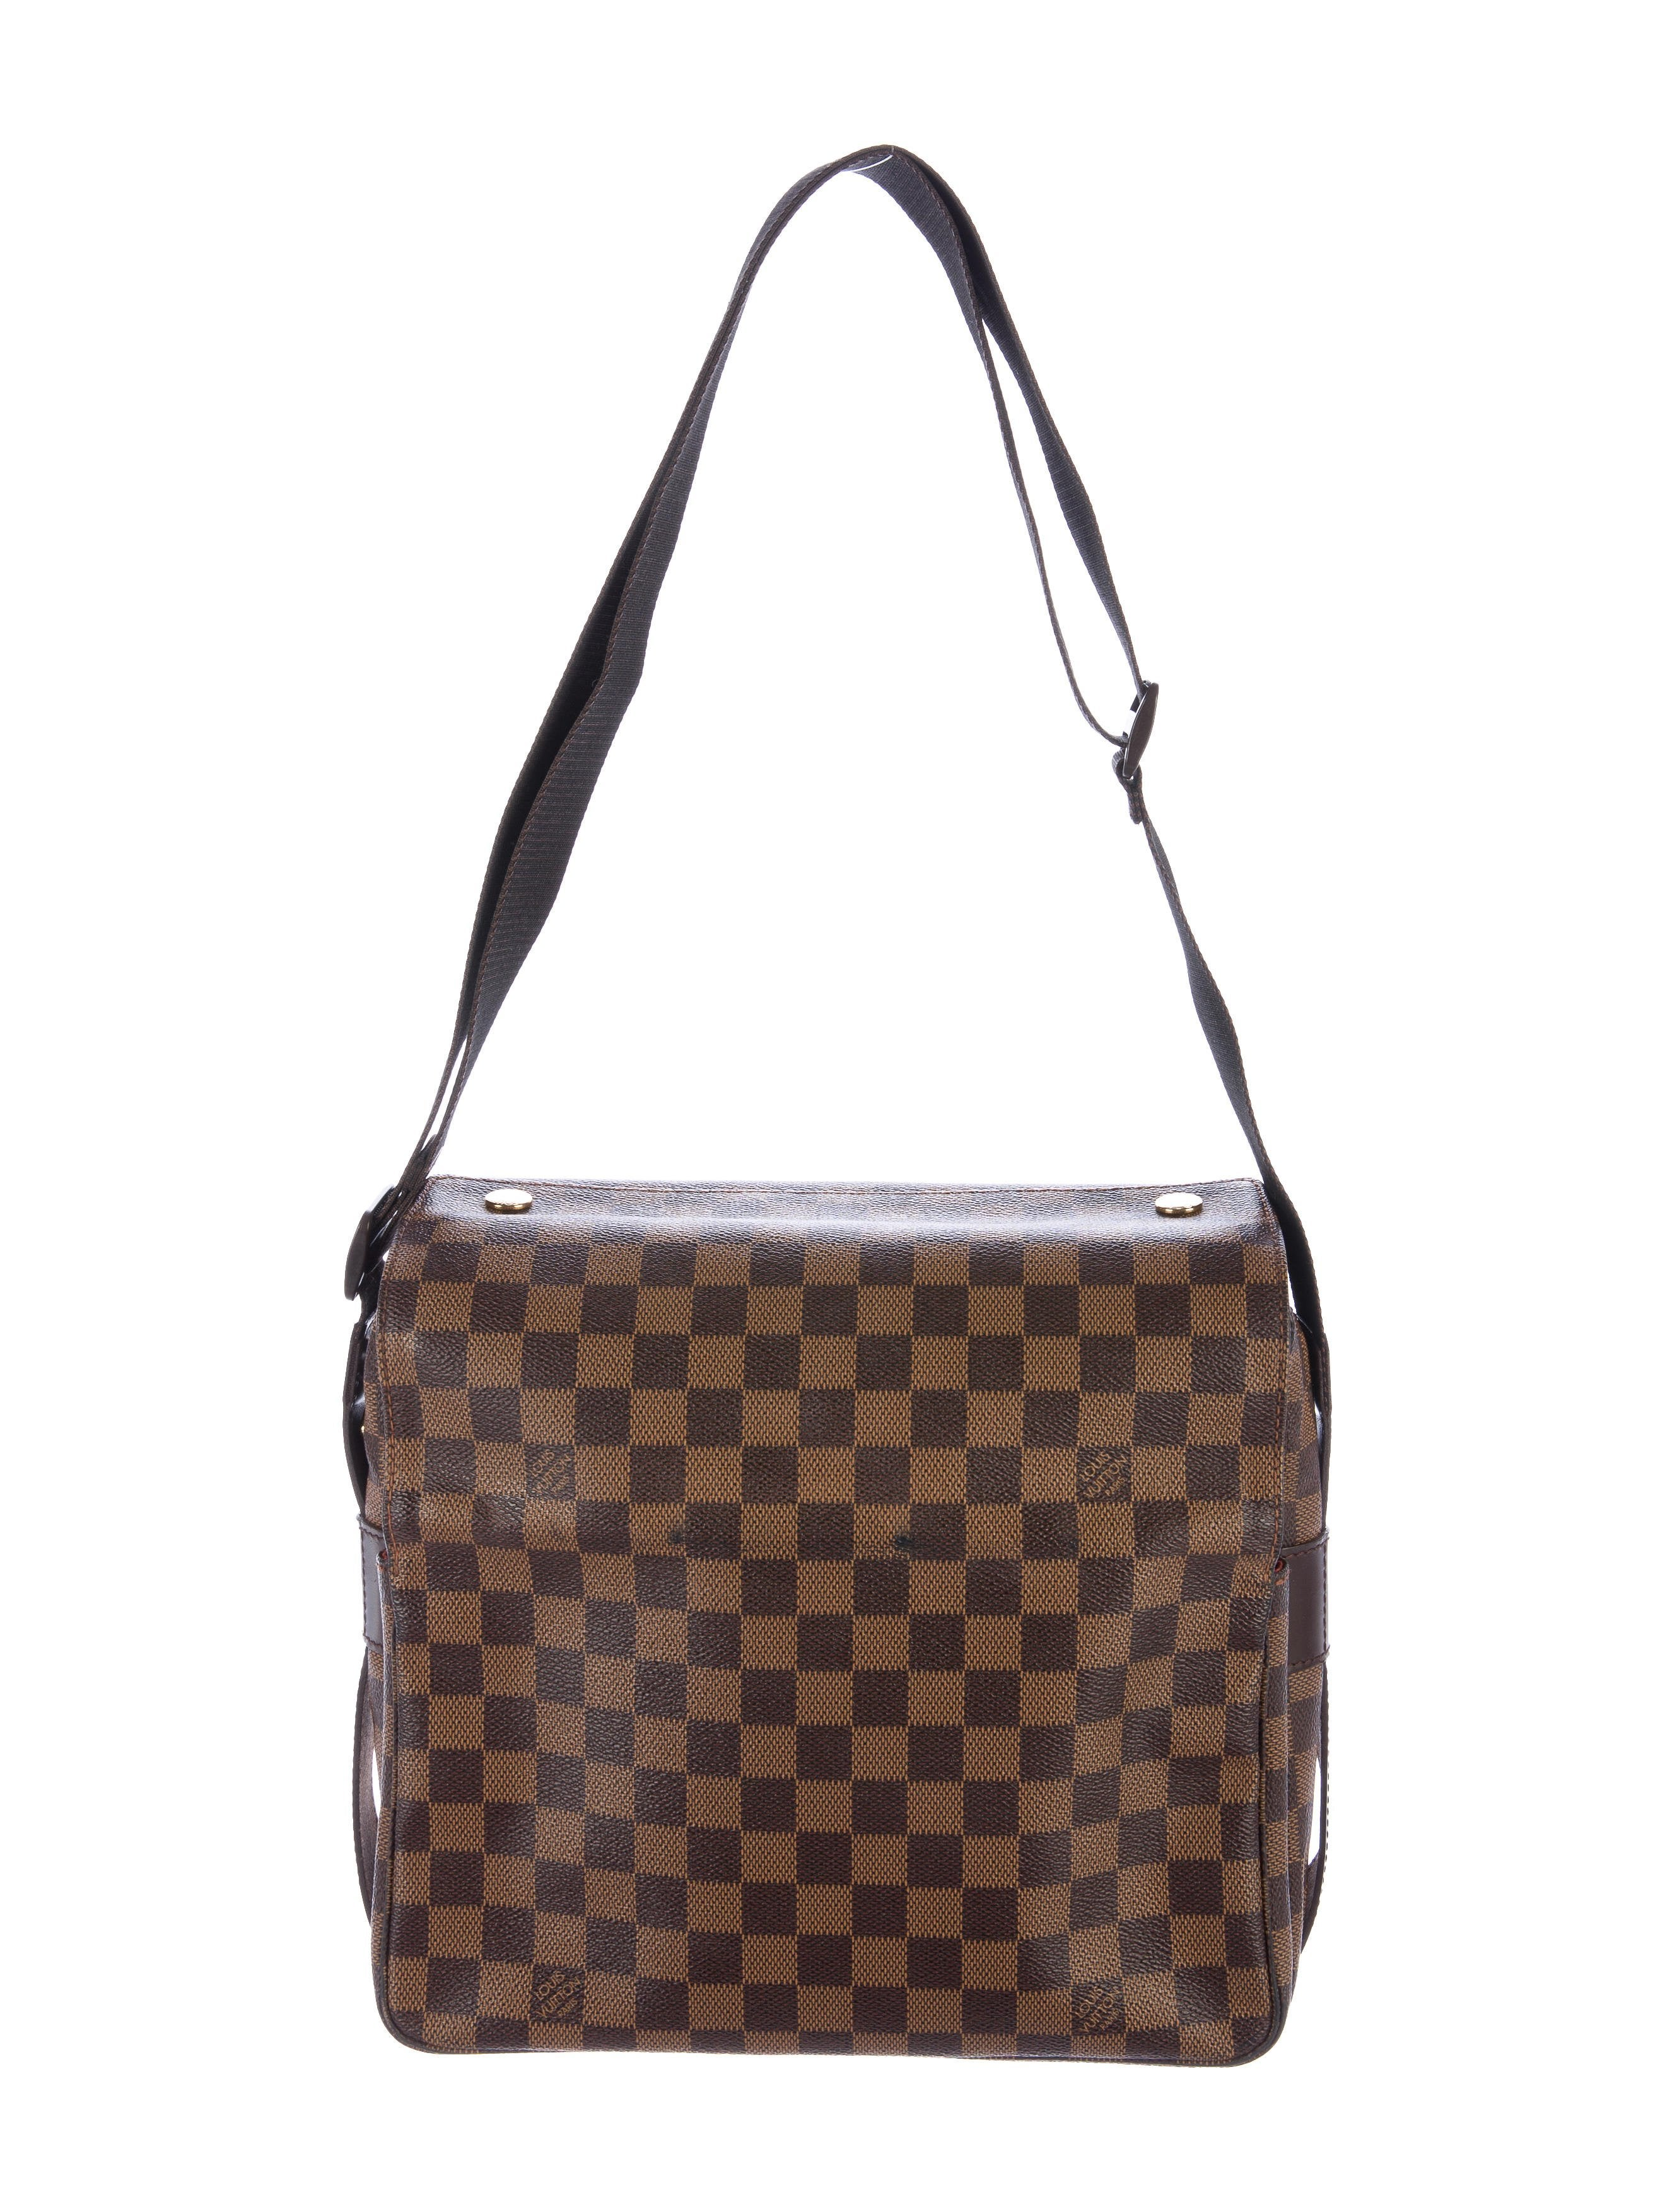 Creative Louis Vuitton Damier Naviglio Messenger Bag - Handbags - LOU120852 | The RealReal